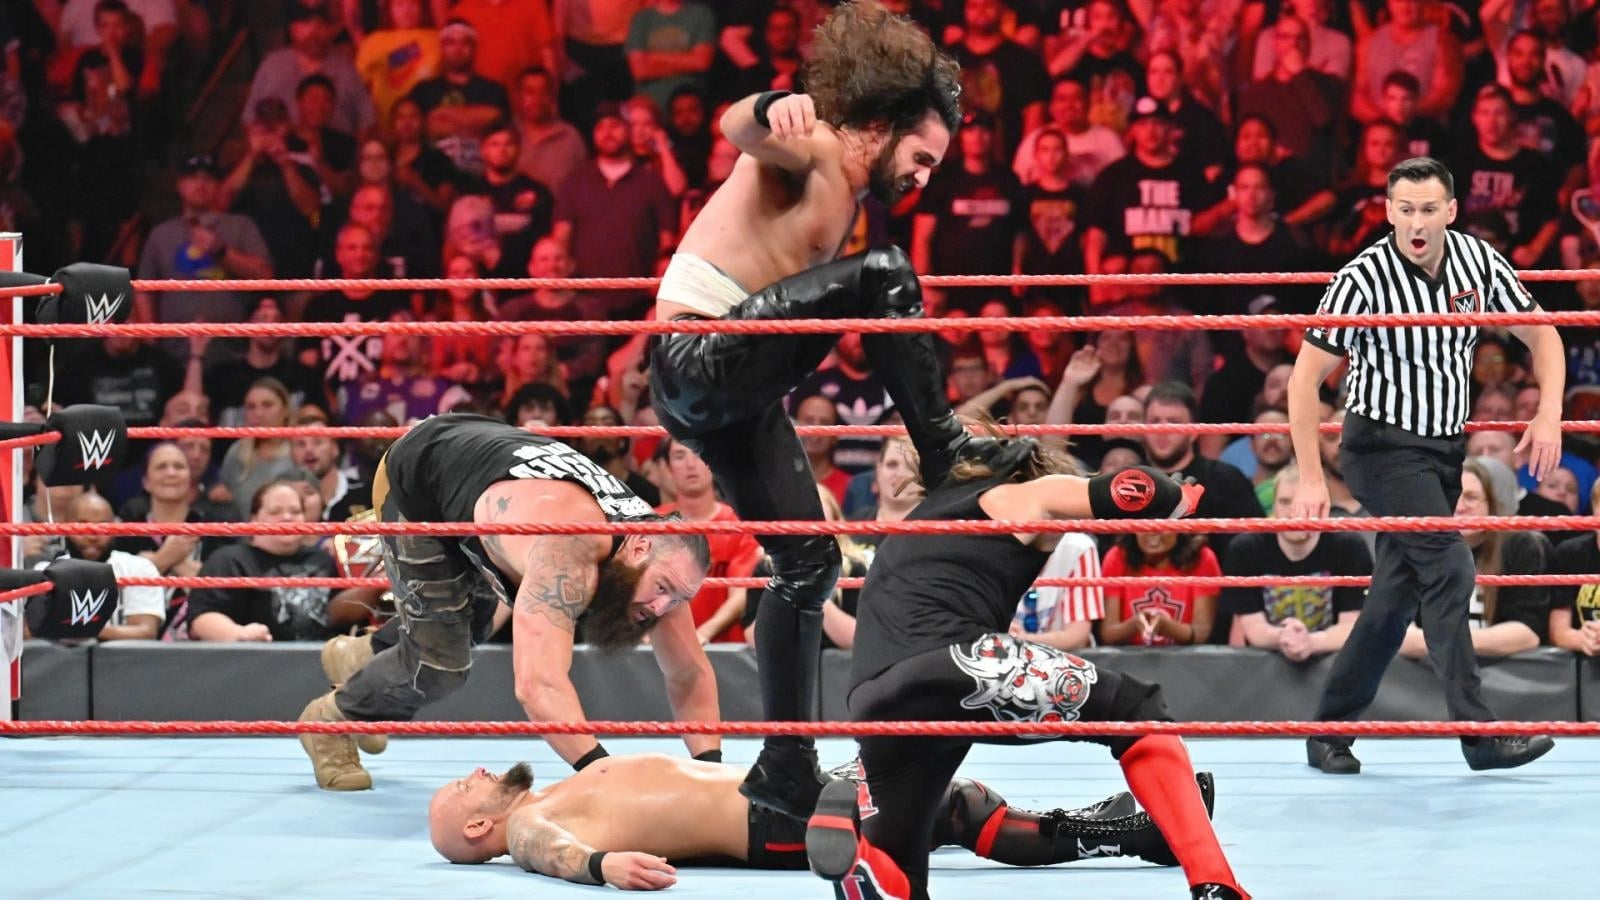 WWE Raw Season 27 :Episode 33  August 19, 2019 (St. Paul, MN)